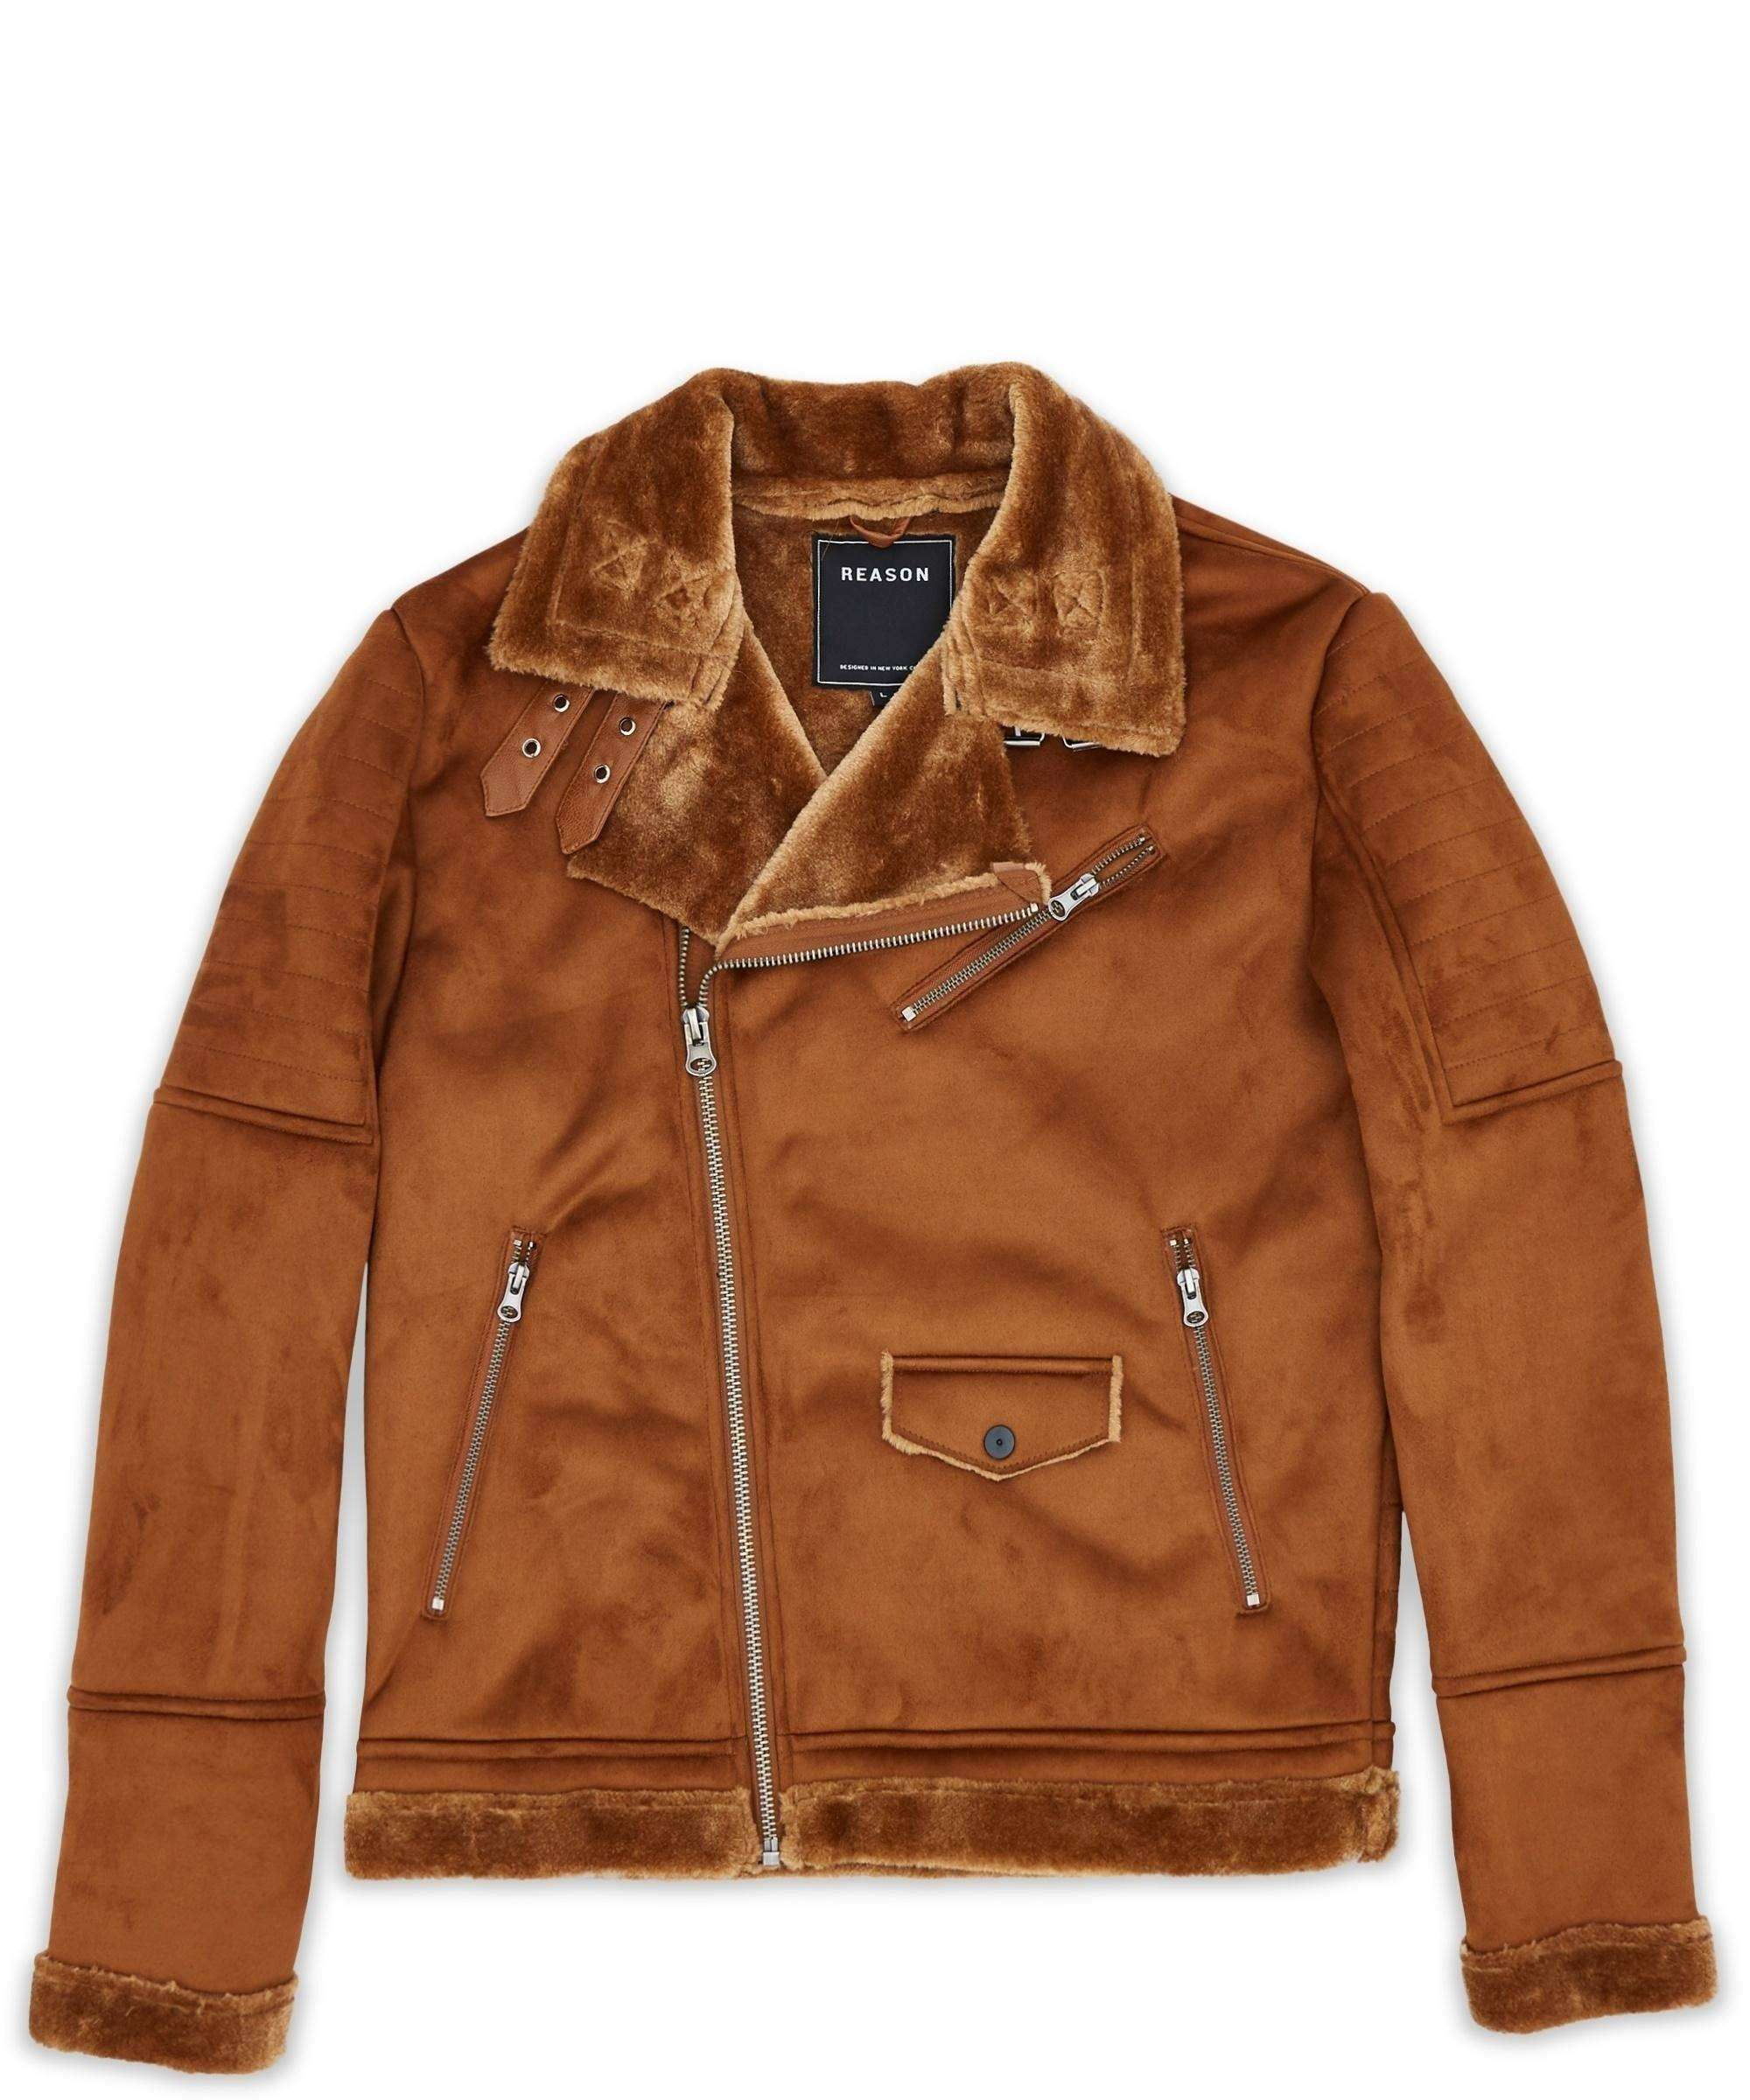 COALITION SUEDE SHEARLING MOTO - BROWN - Reason Clothing